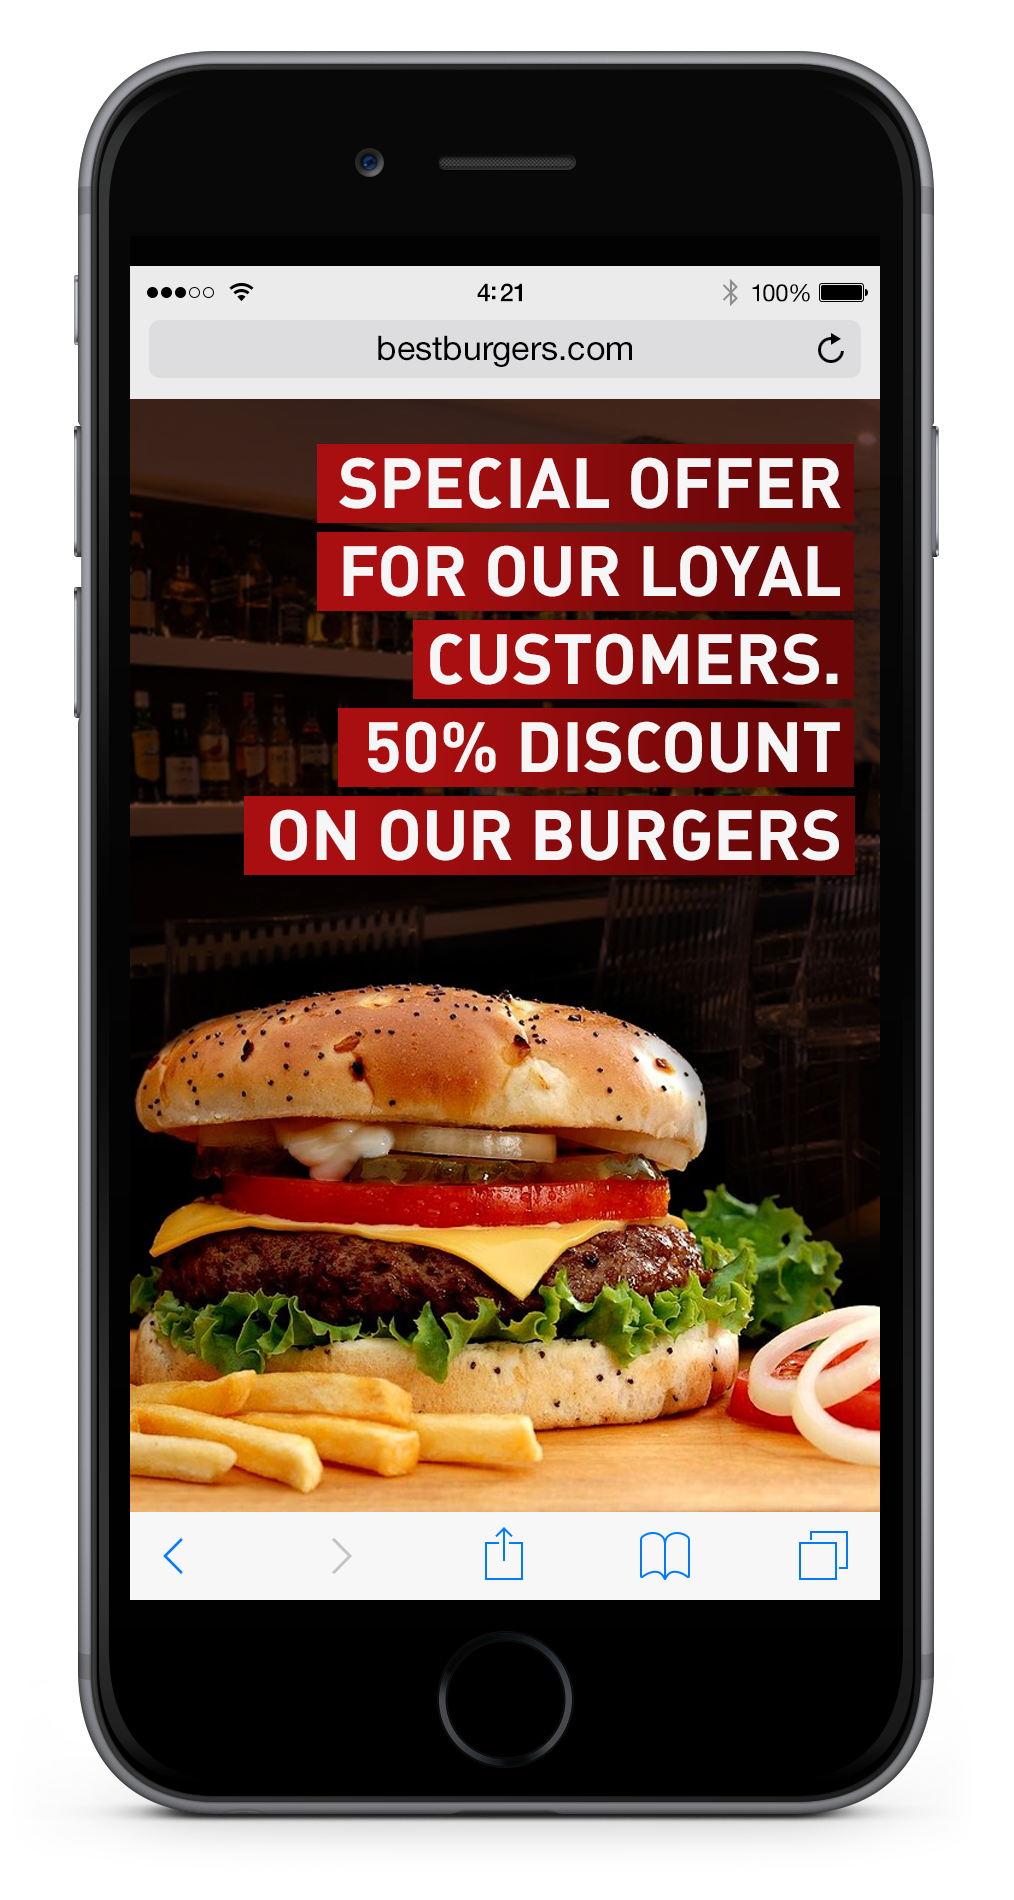 Kopie_van_SWI_i6.2_Burger_offer_b.png